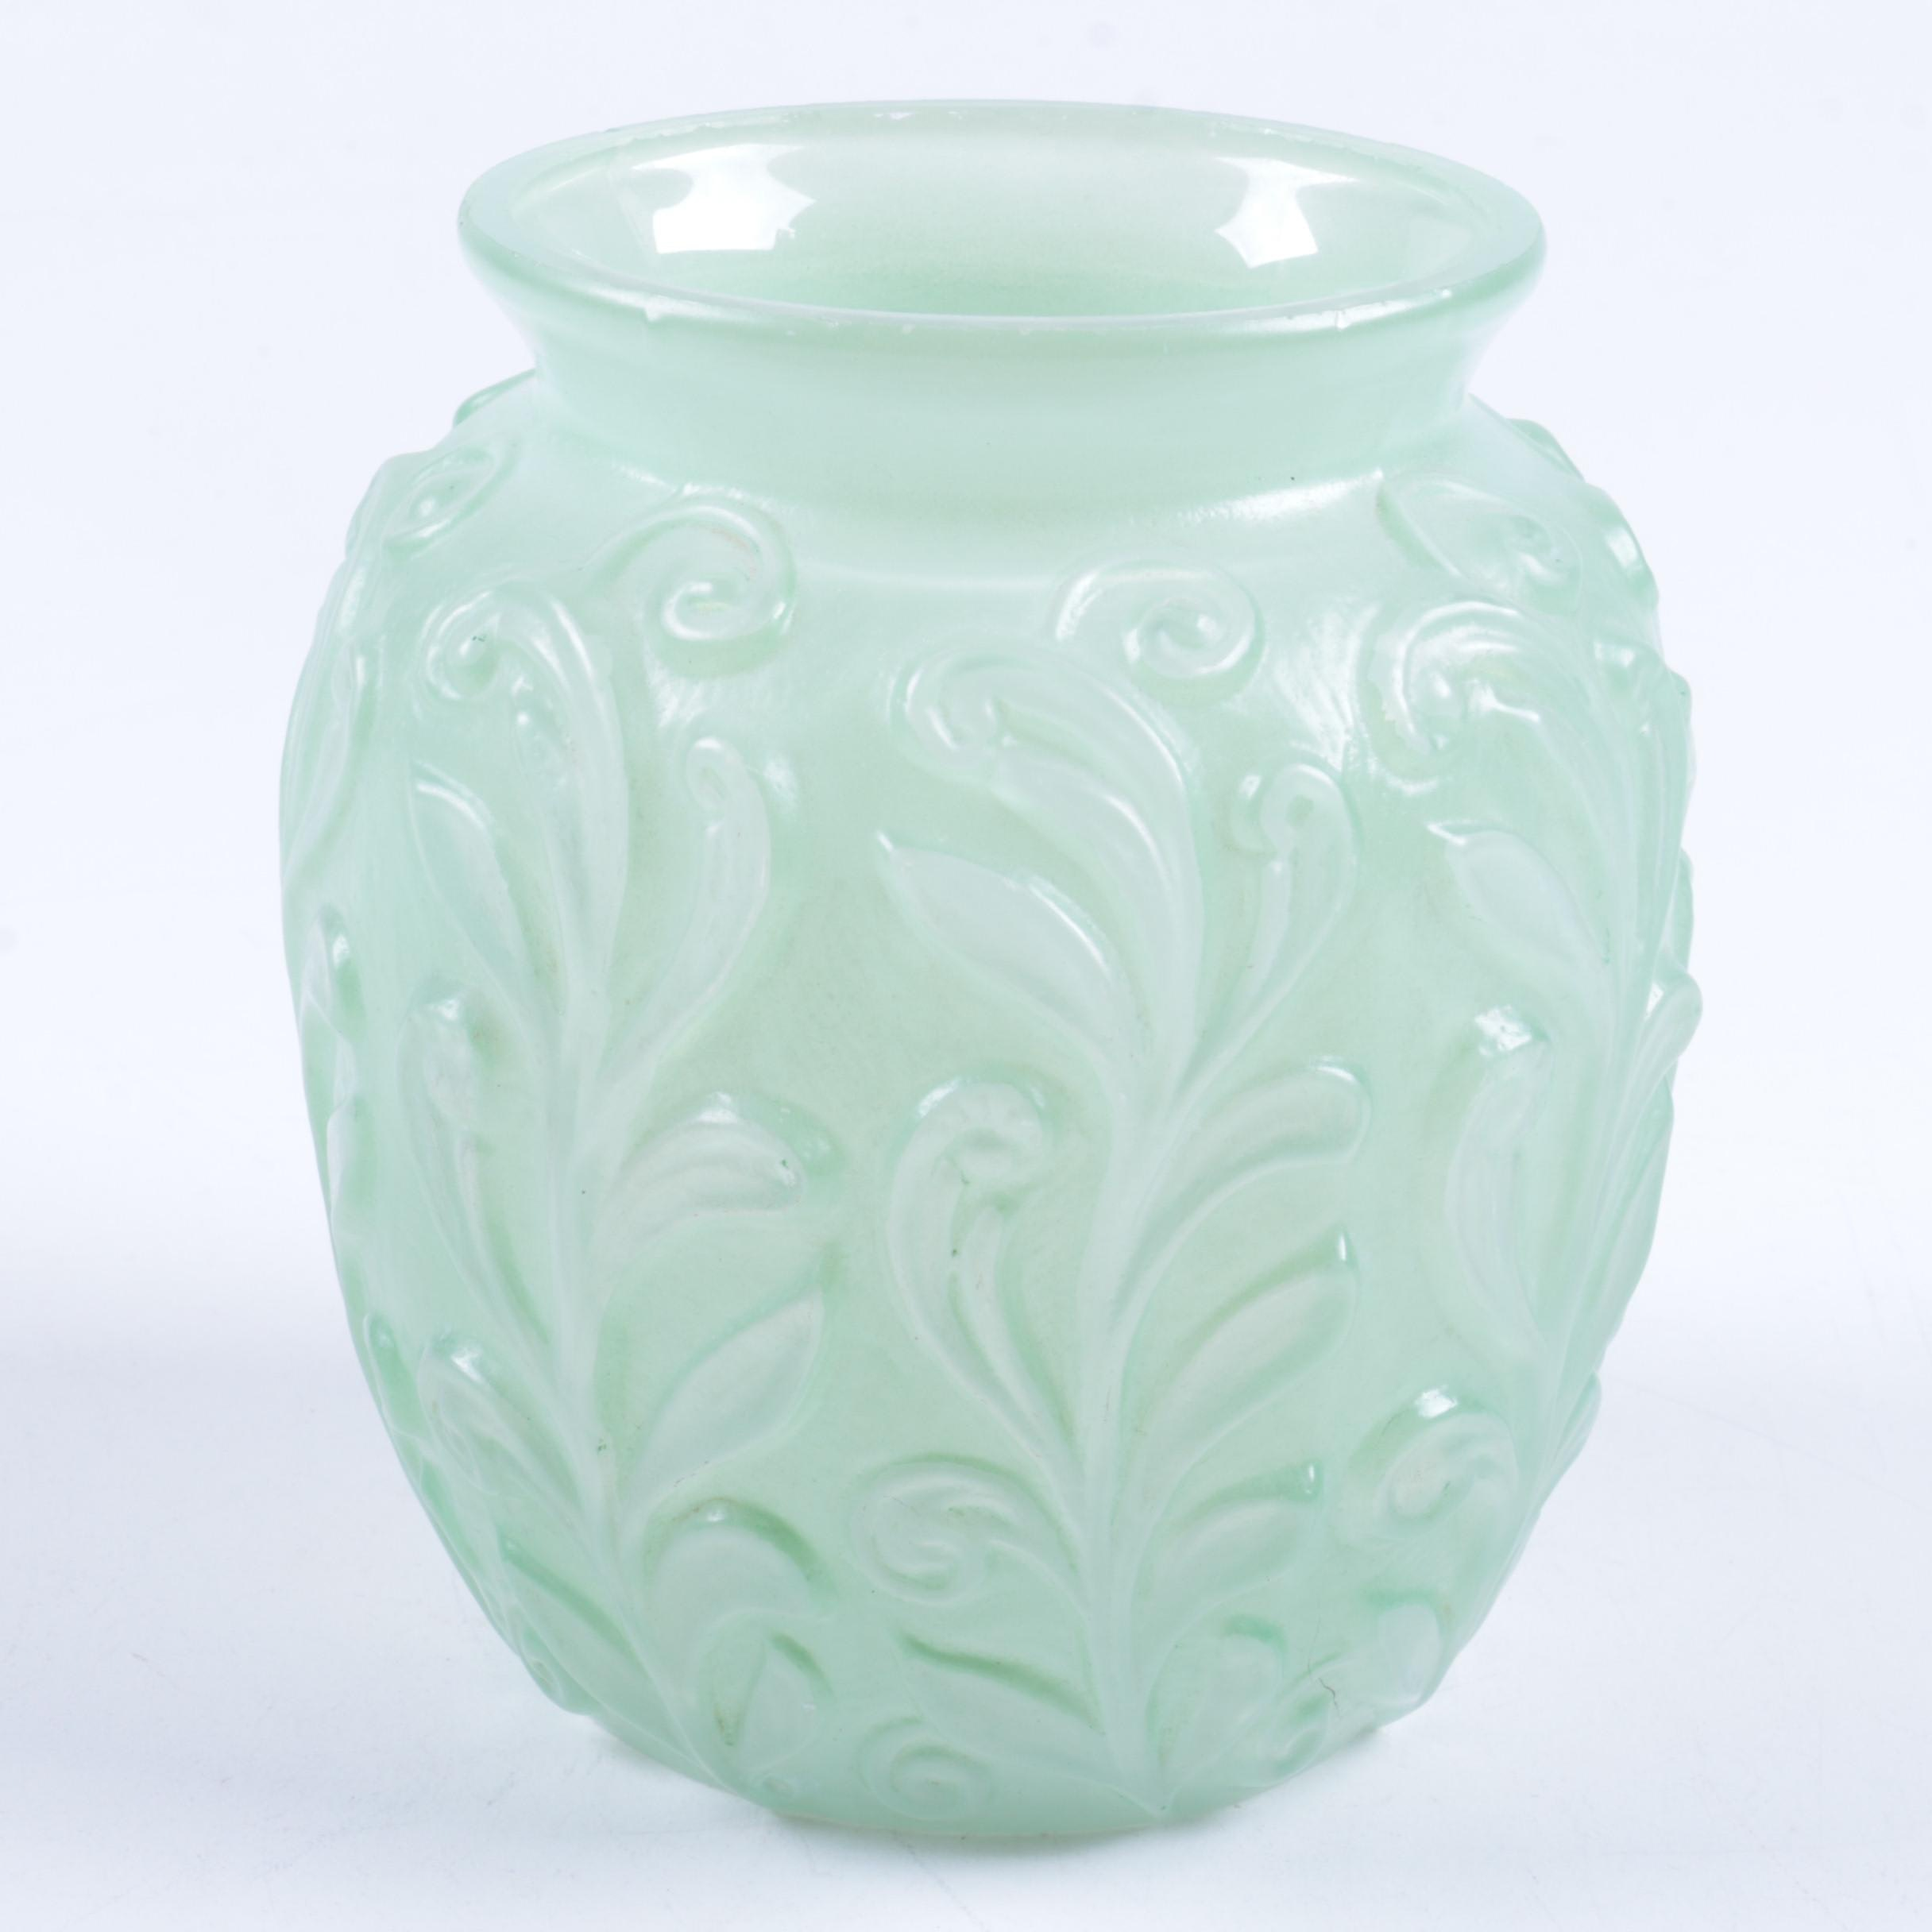 Teal Phoenix and Consolidated Glass Vase